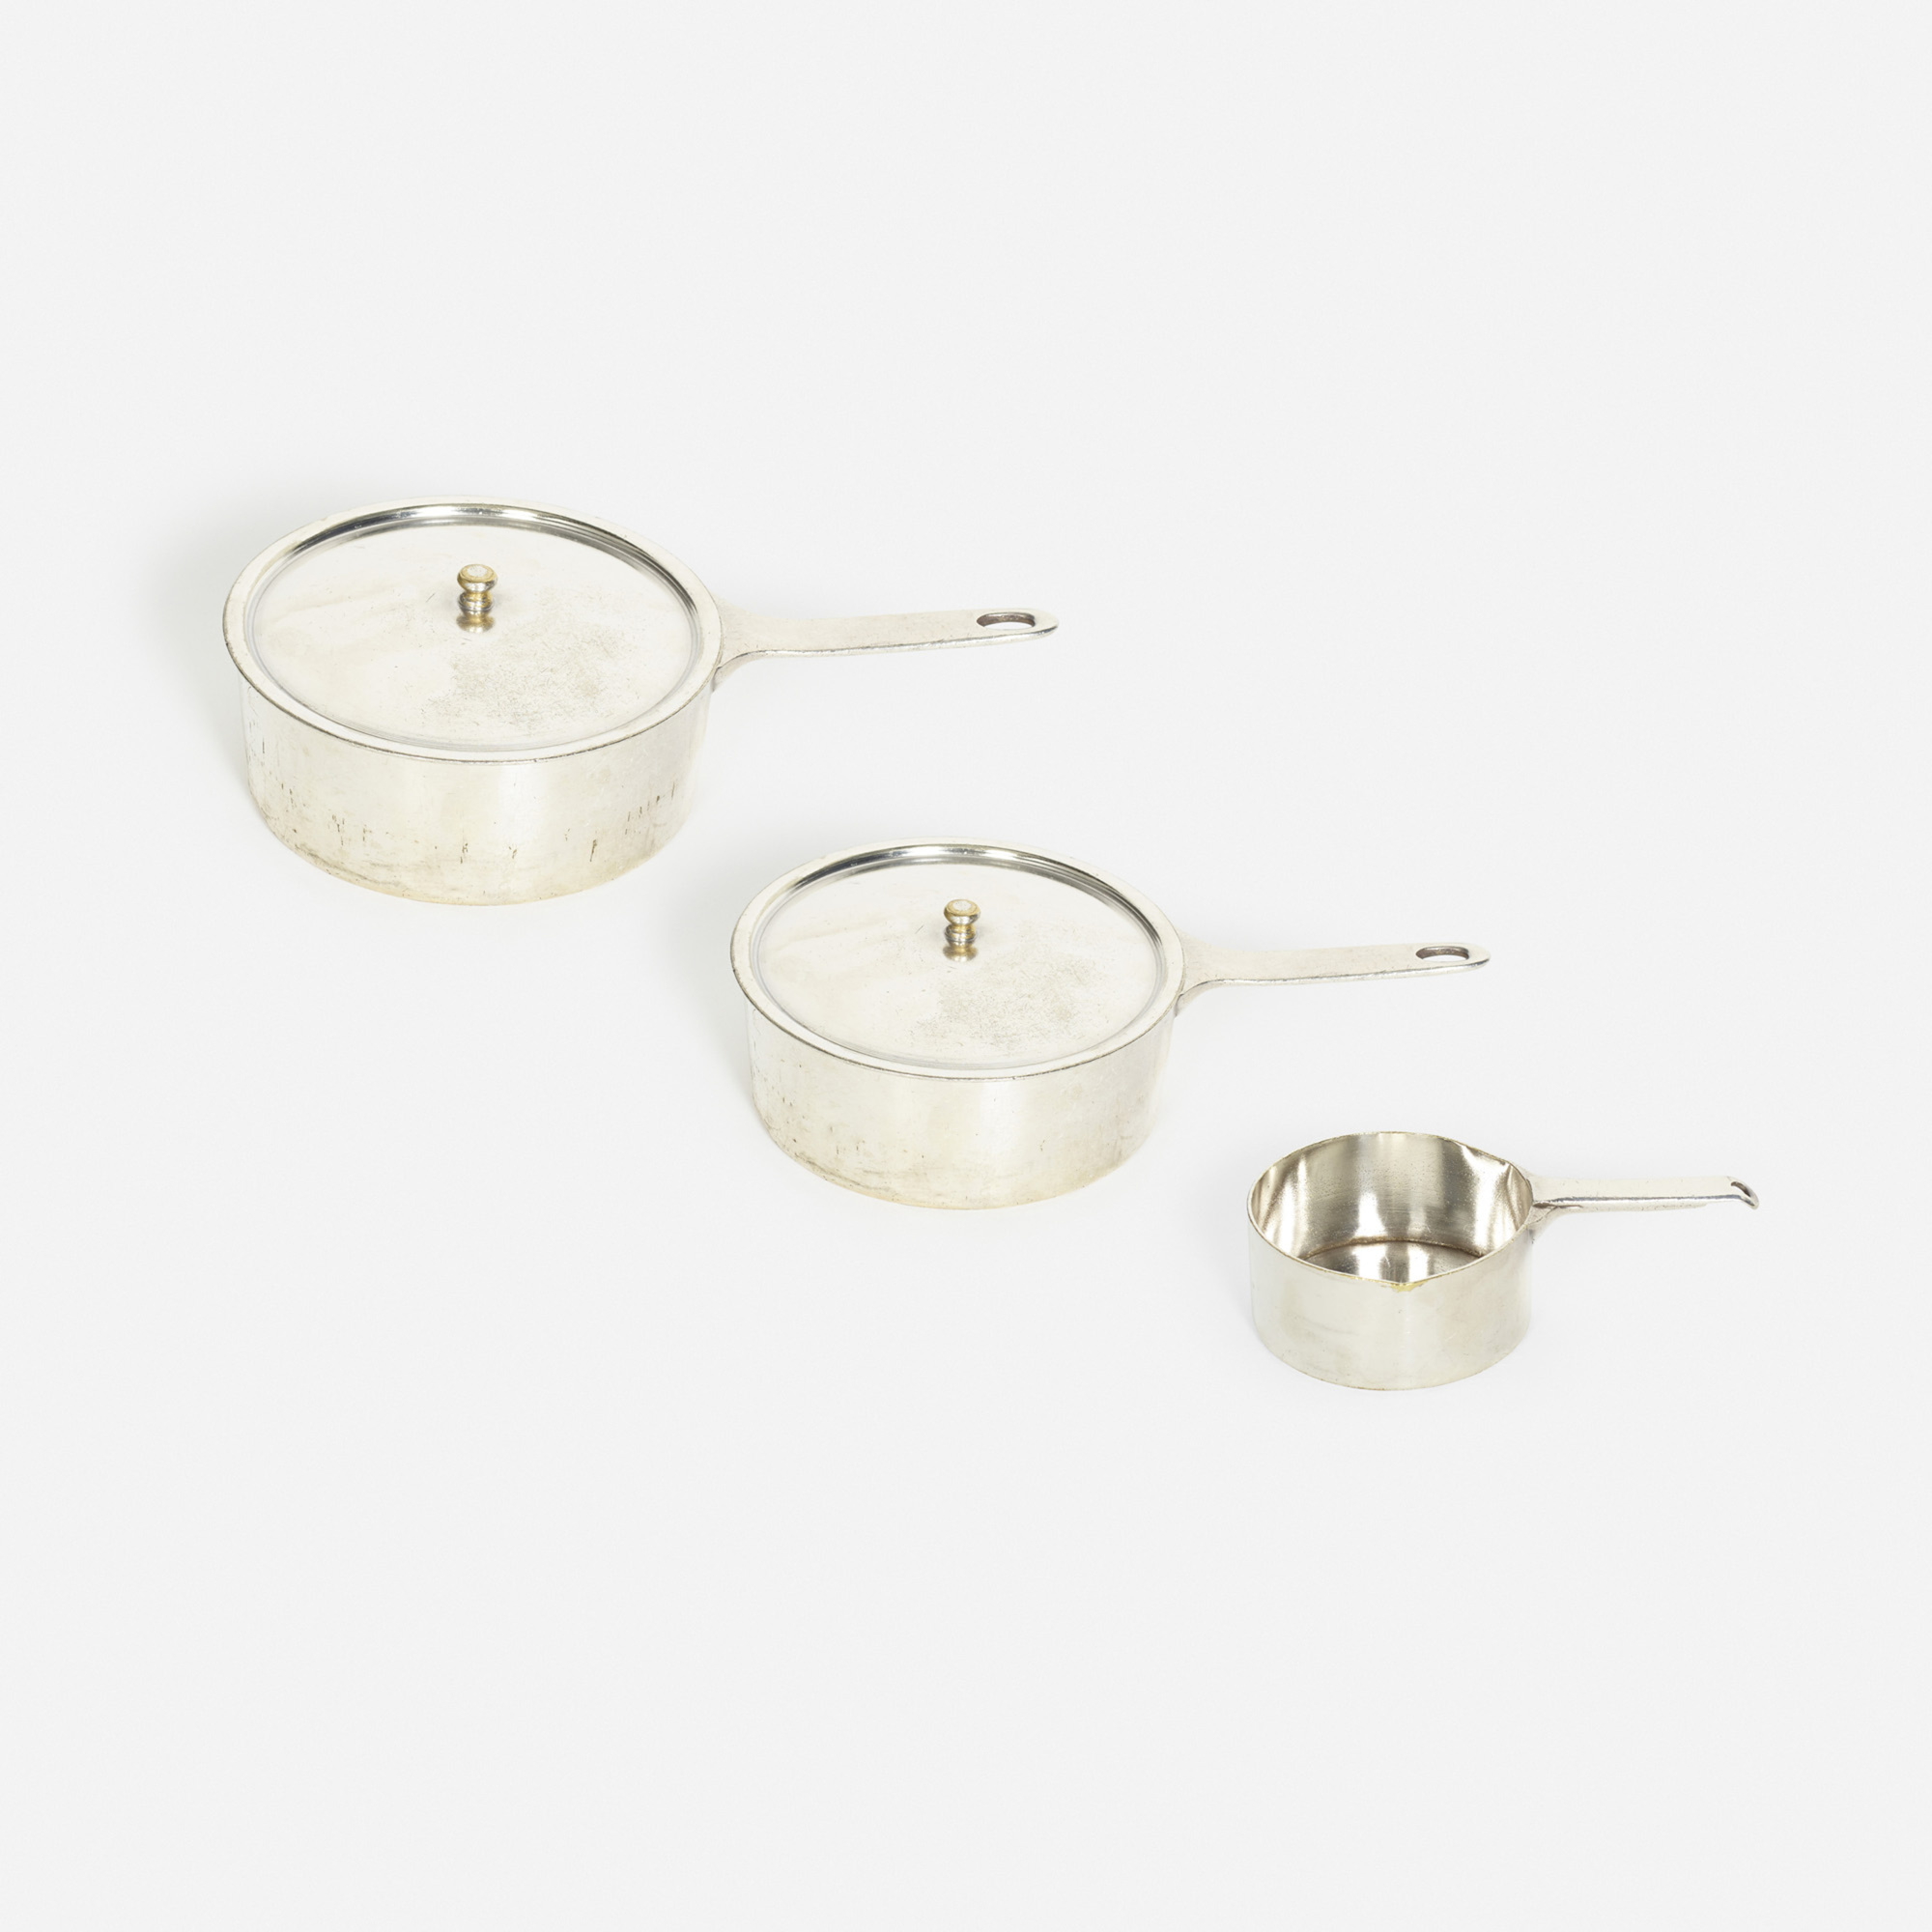 855: Garth and Ada Louise Huxtable / sauce pots from the kitchen of The Four Seasons, set of three (1 of 1)